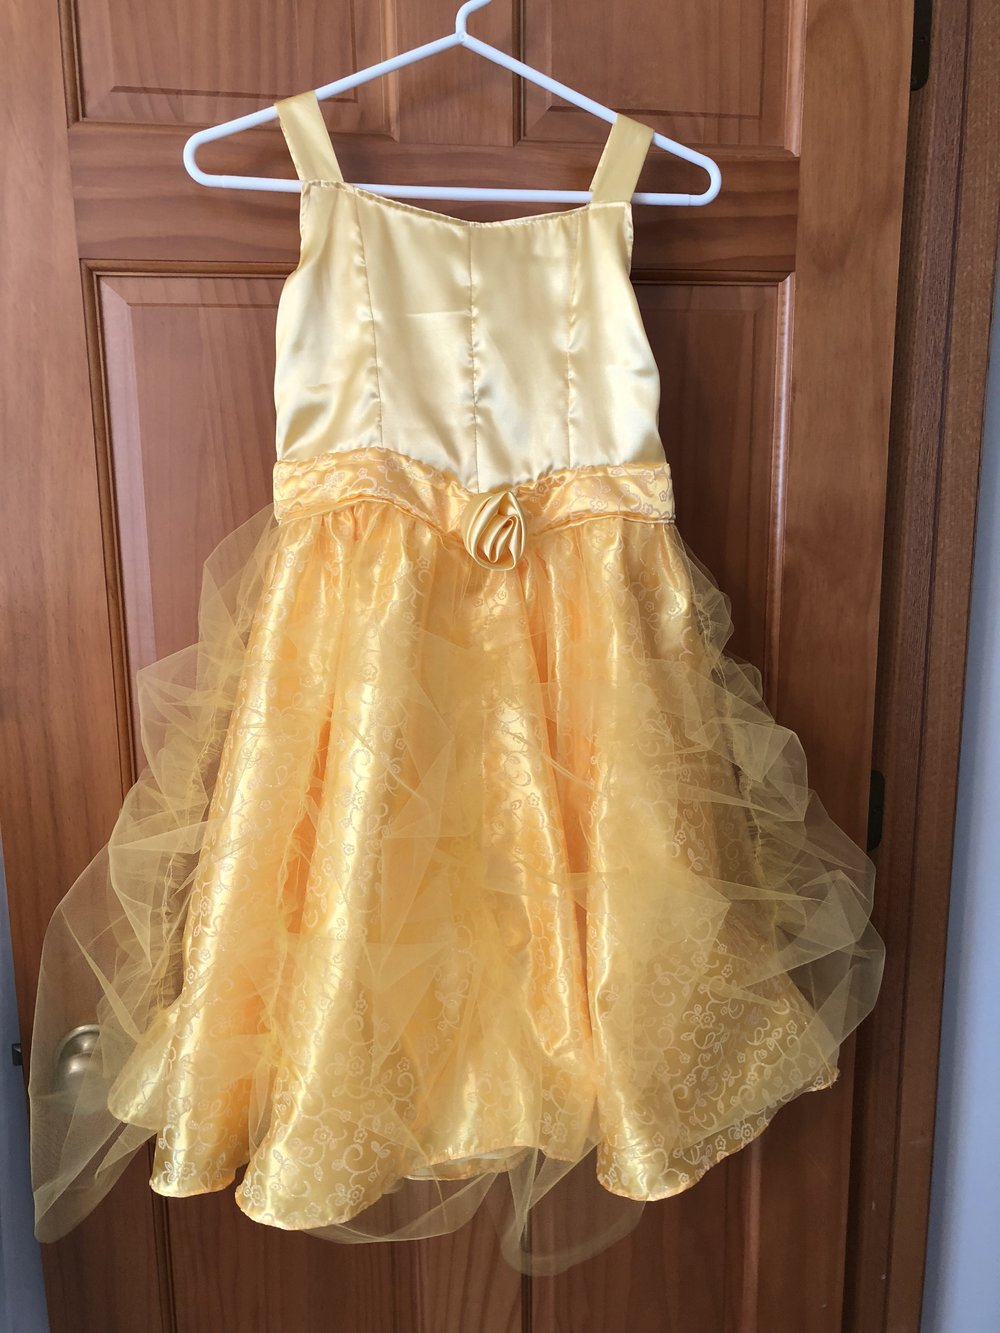 Child Size Belle Dress